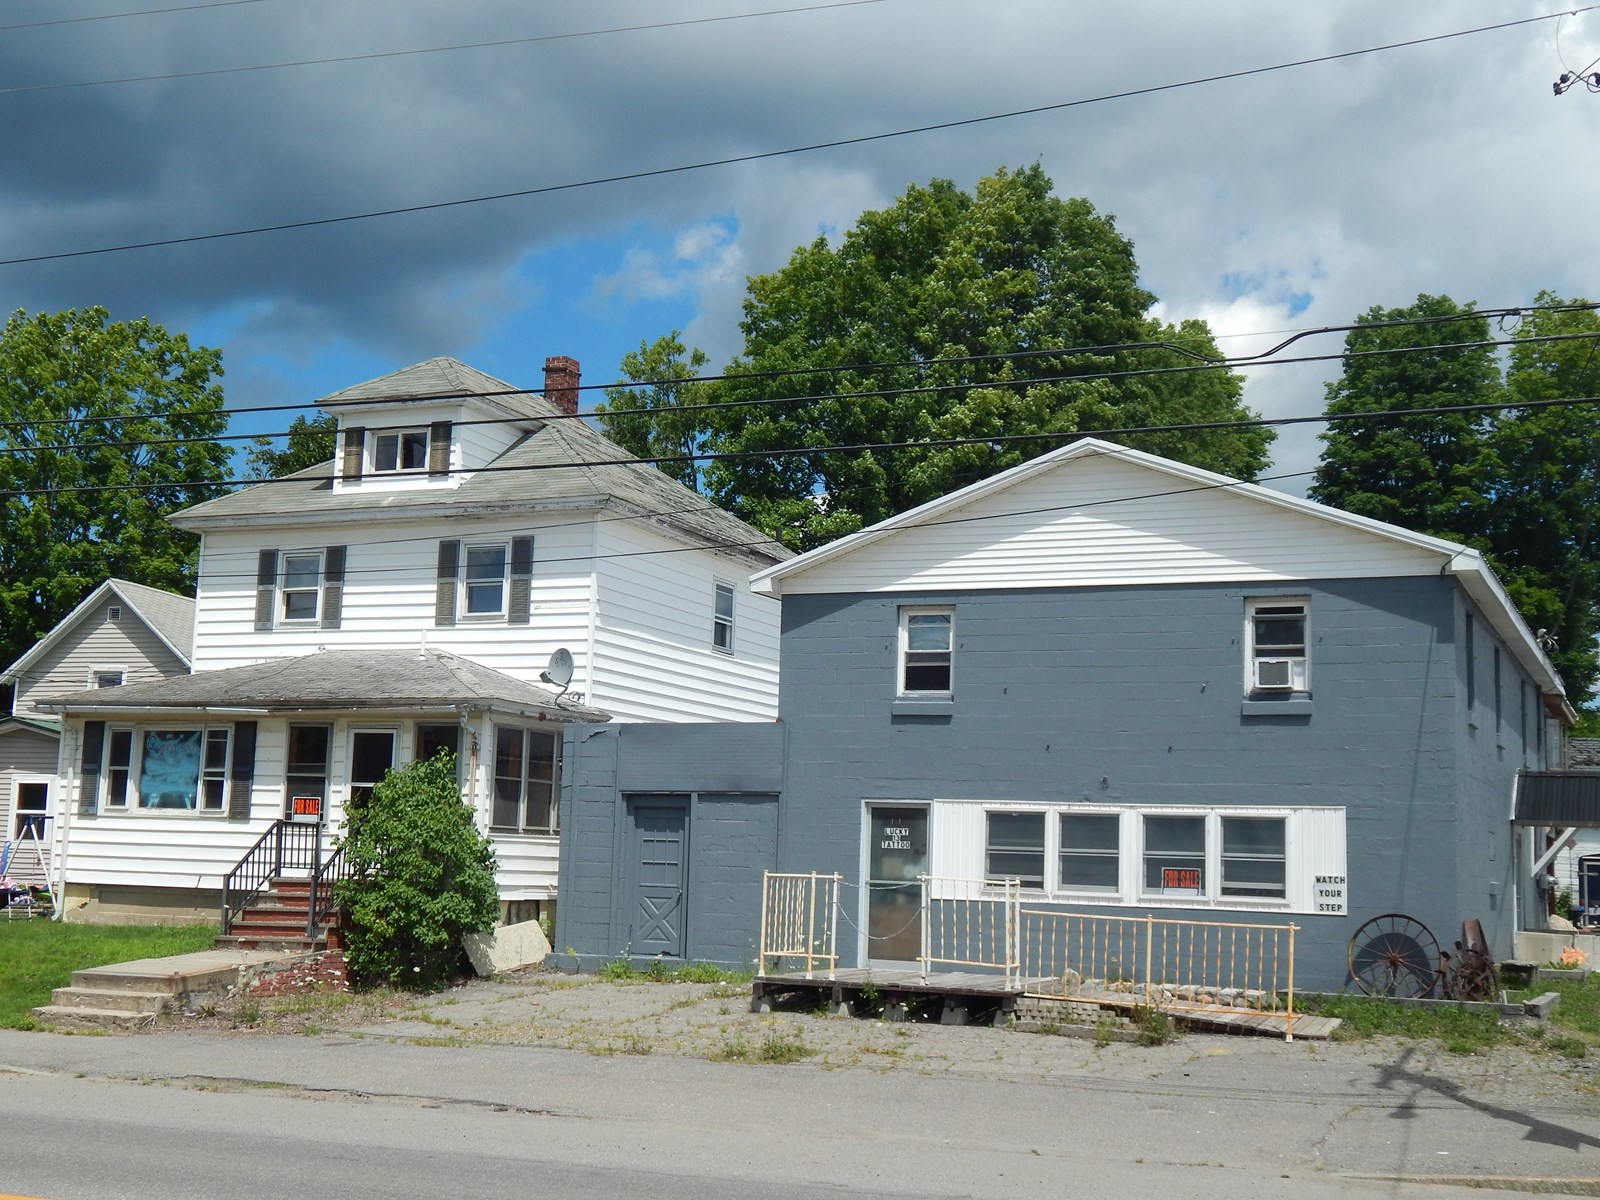 Commerical Property for Sale in East Millinocket, ME